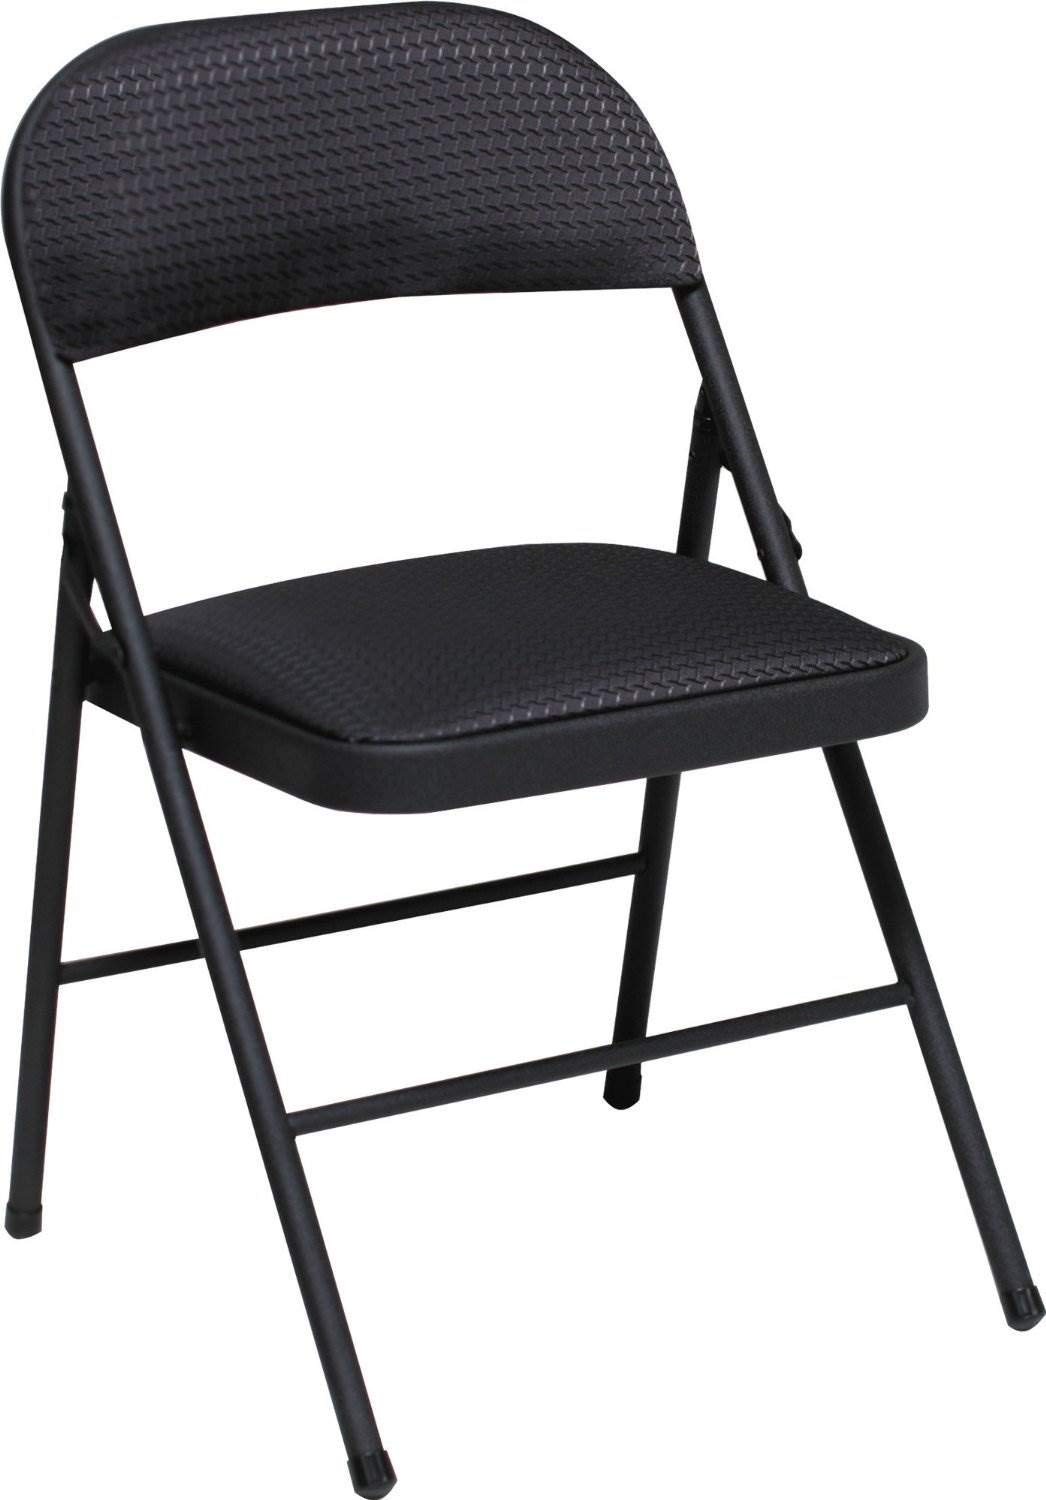 Fabric Seat and Back Folding Chair in Black Set of 4 Set of 4 Color Black